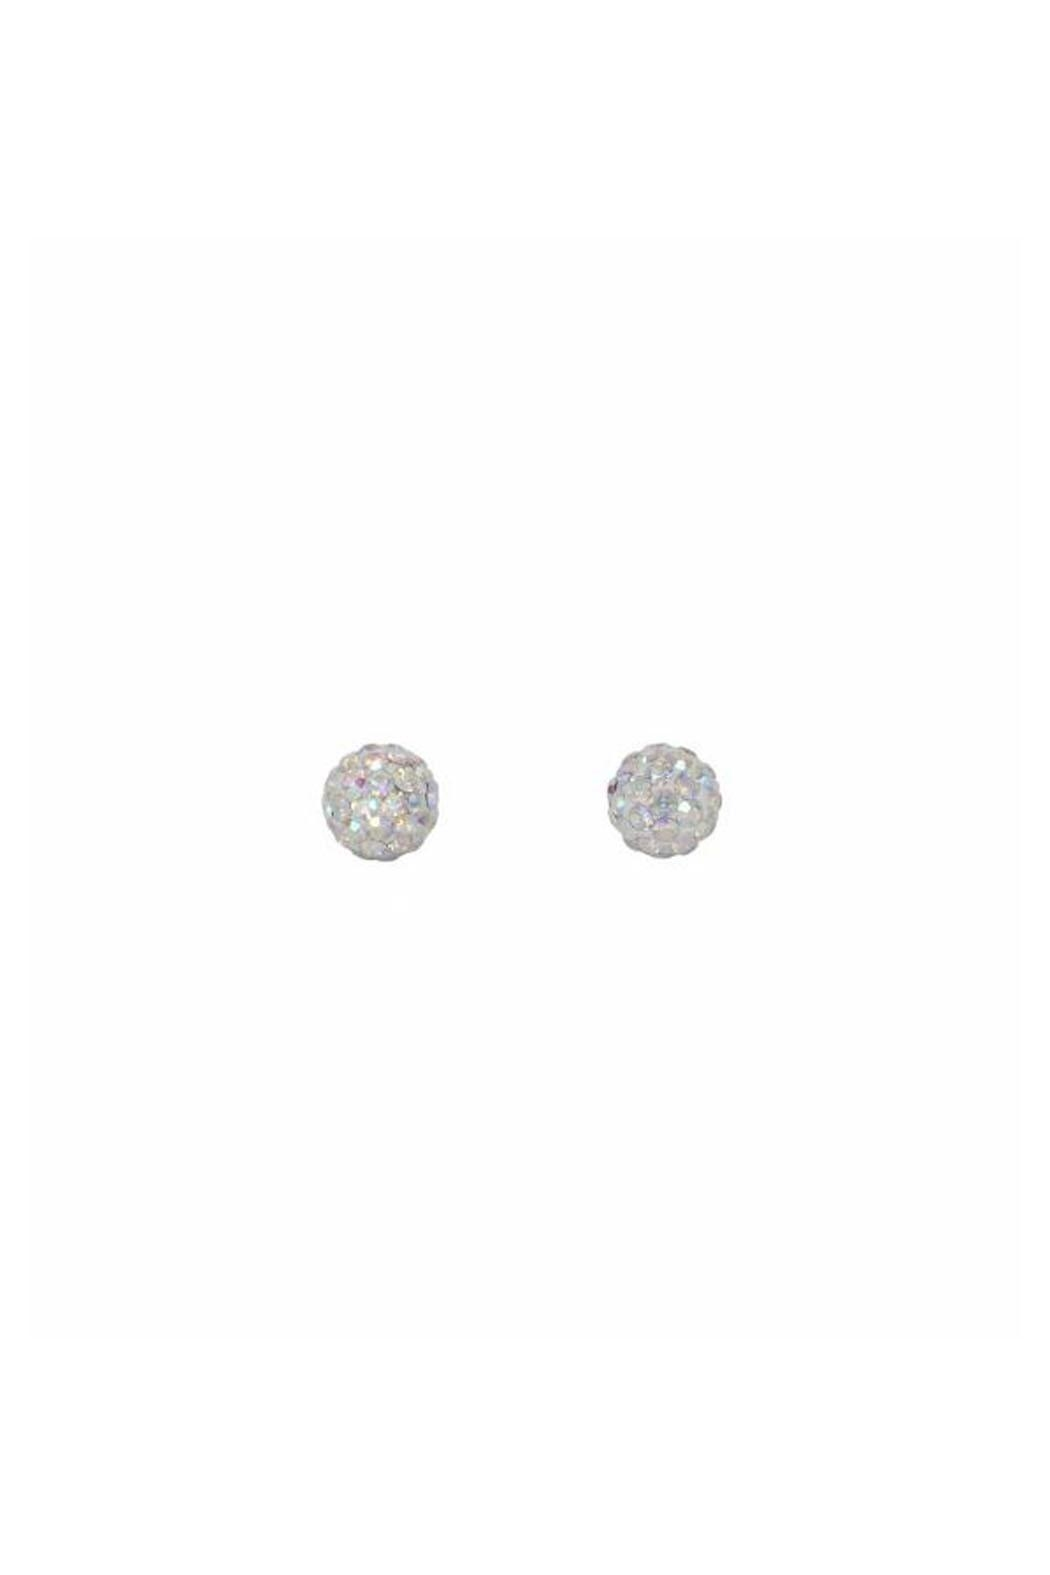 PARK AND BUZZ Radiance Stud Earrings - Main Image